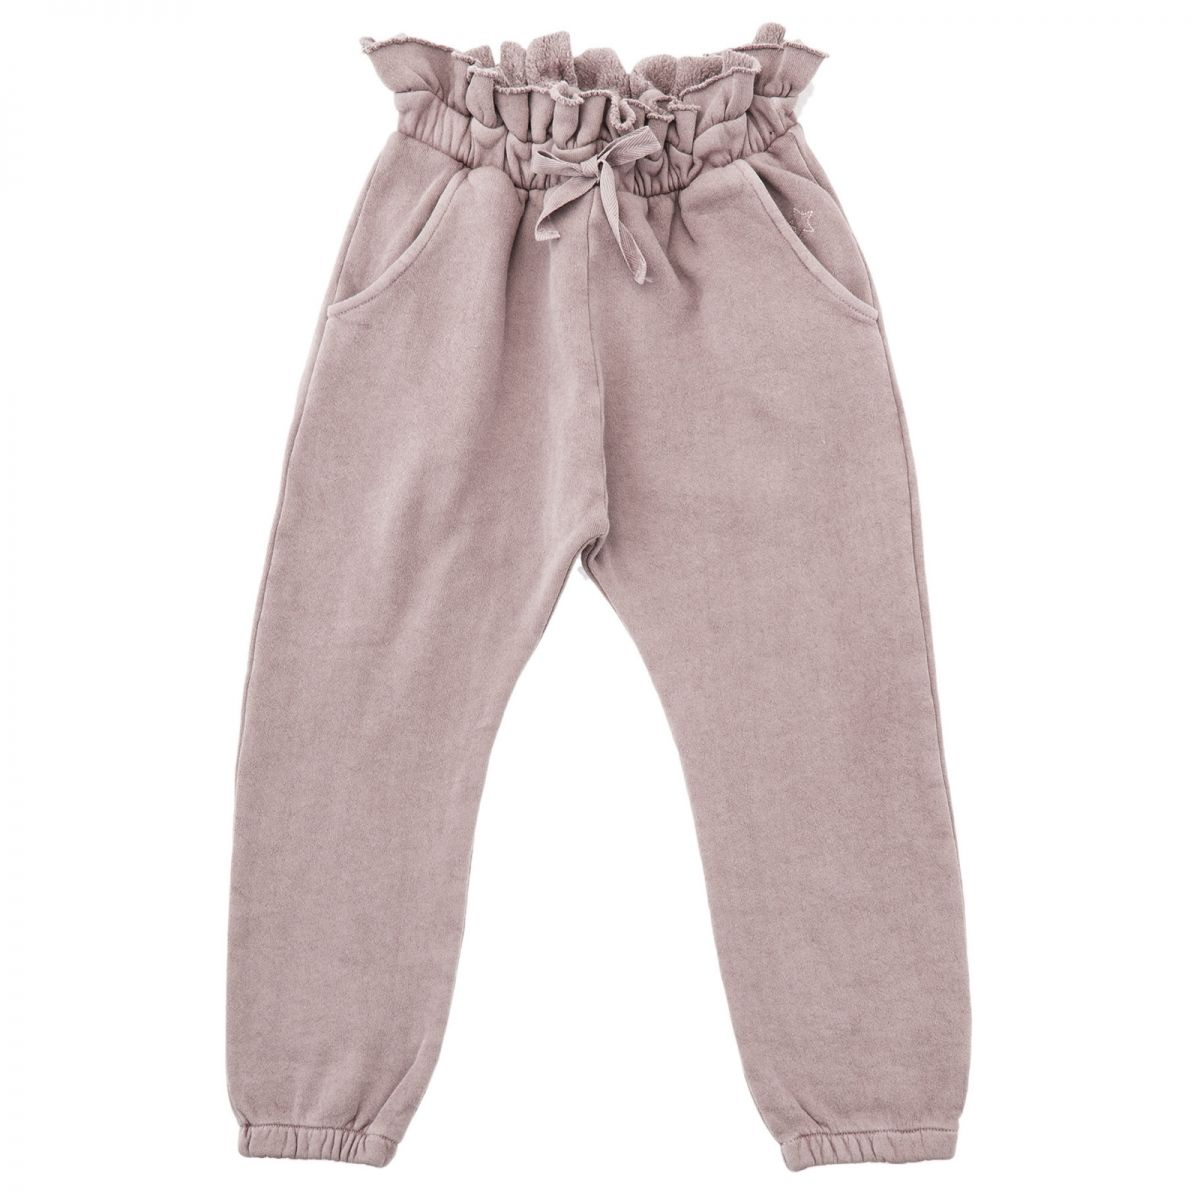 Tocoto Vintage - Ruffled waists trousers pink - 1